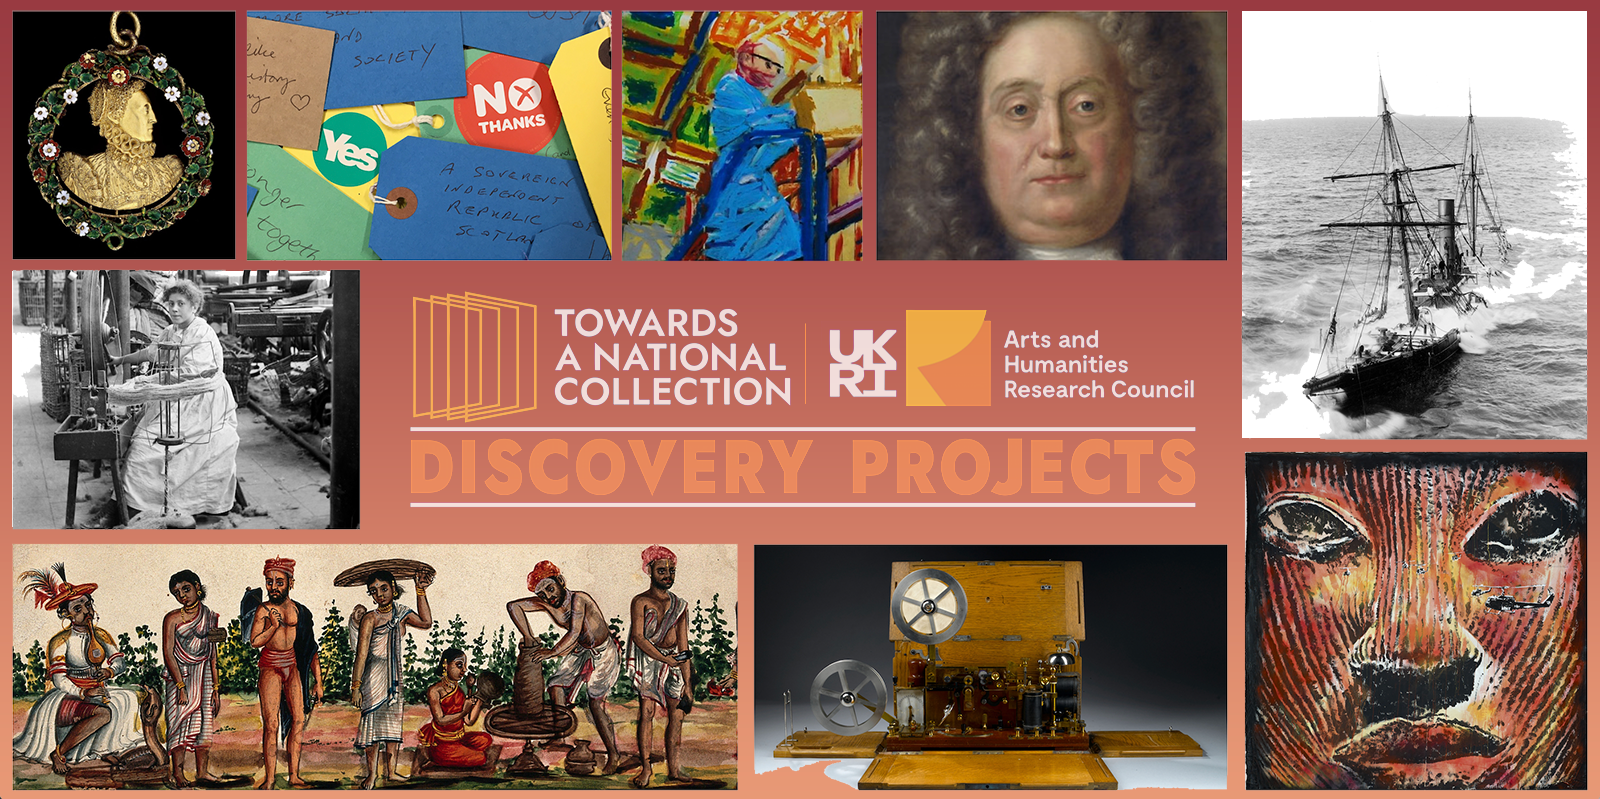 Towards a National Collection banner